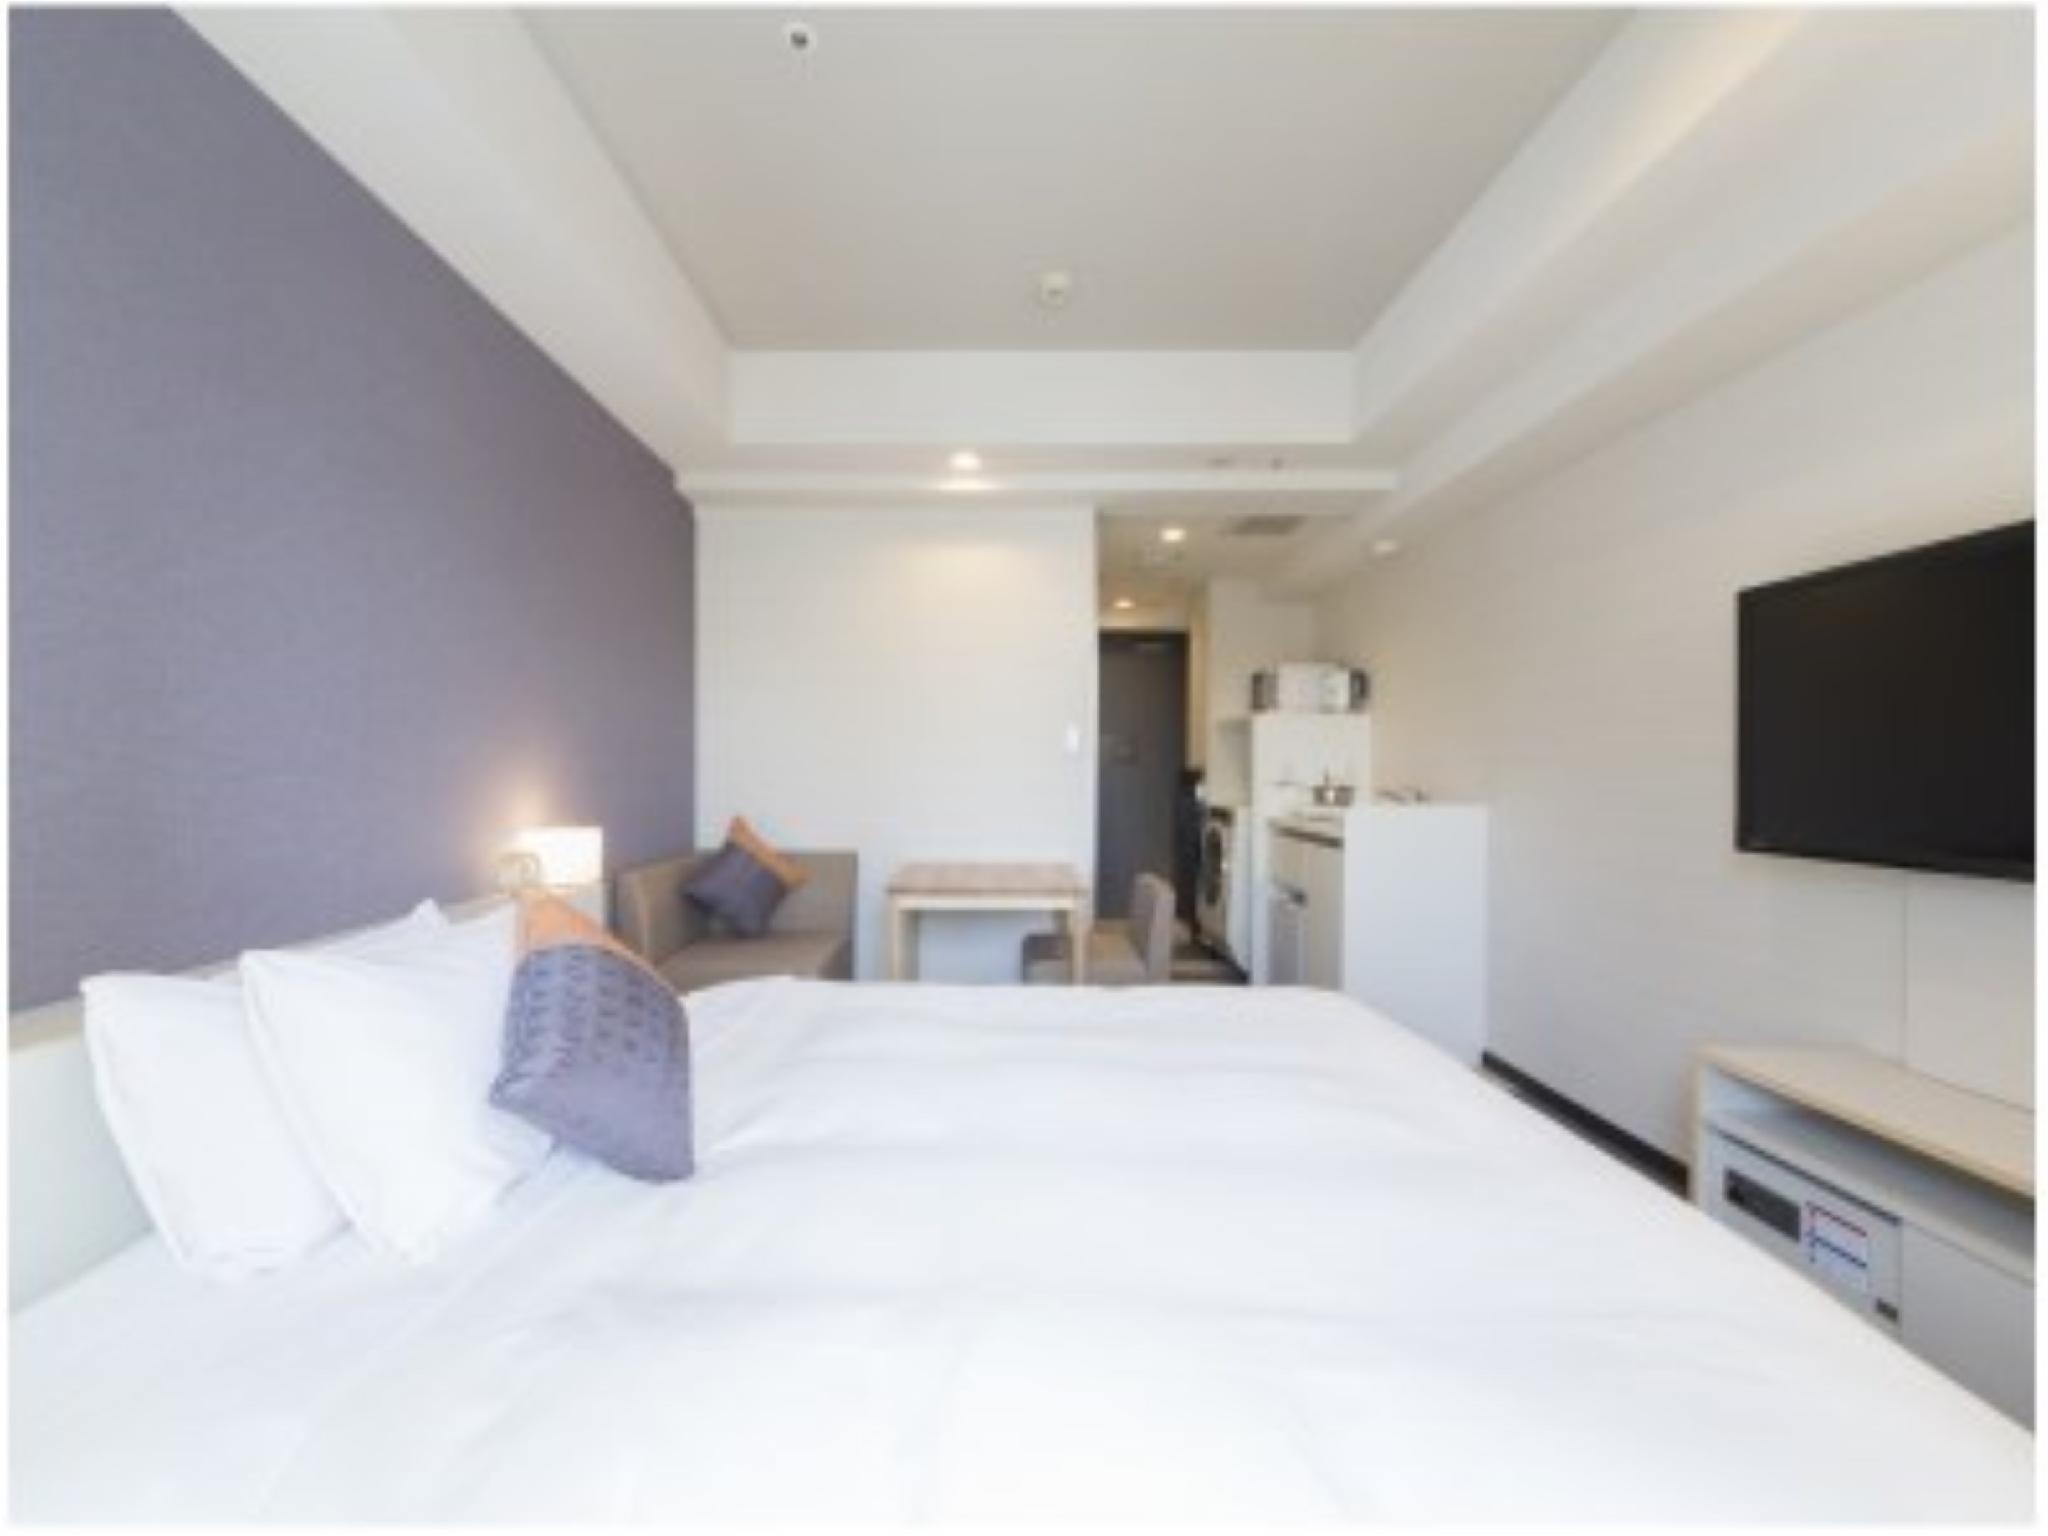 Residential Double Room